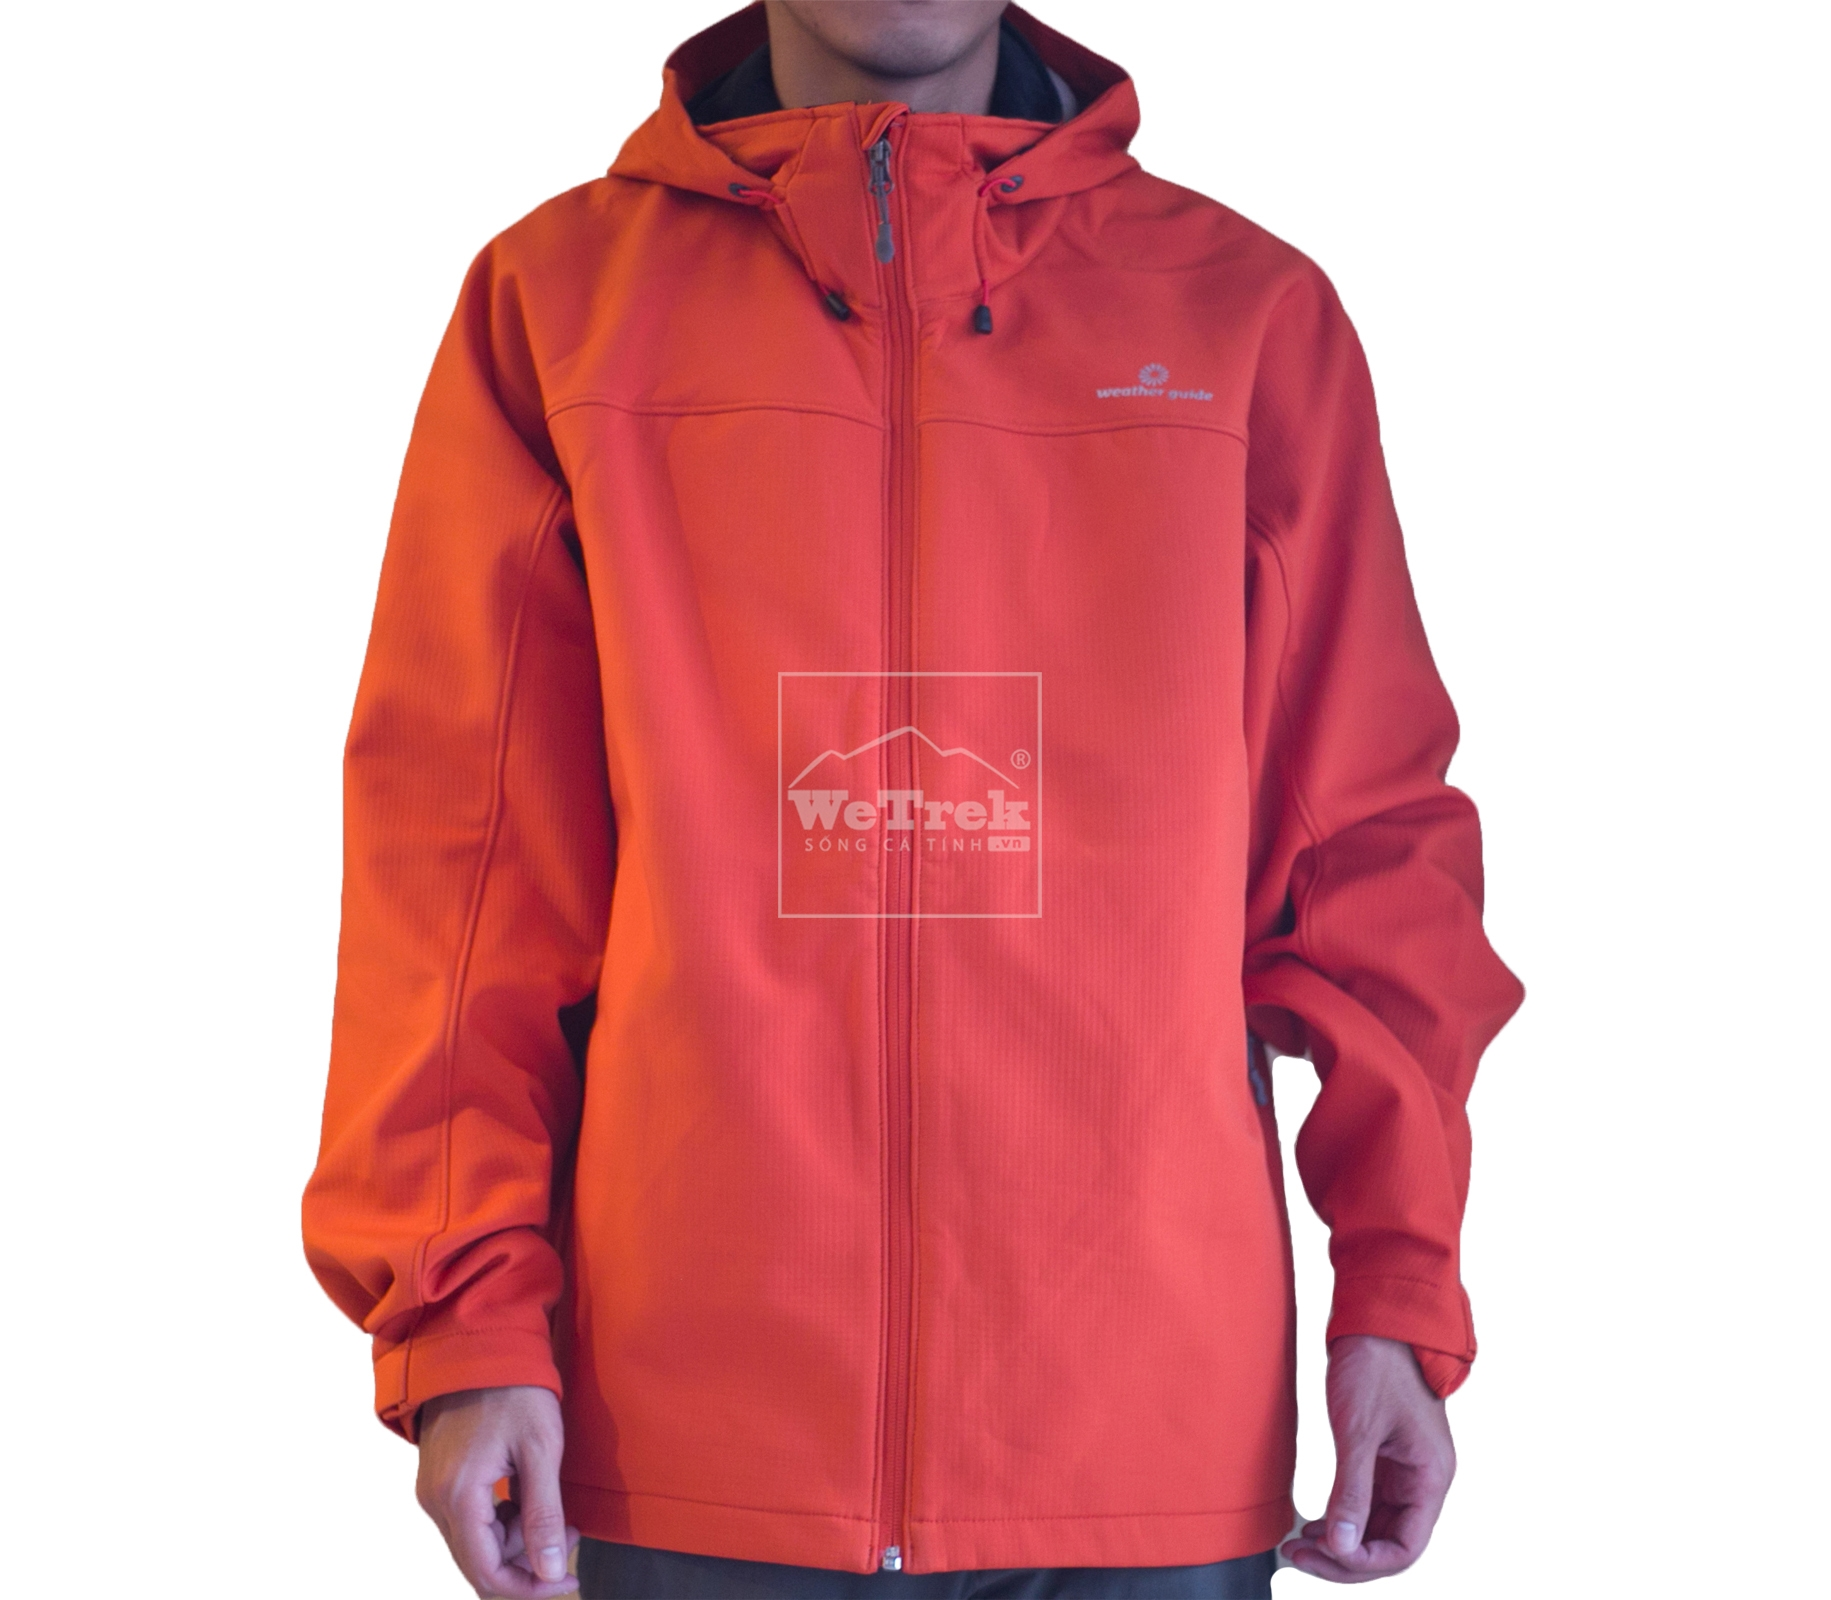 Ao-khoac-nam-Weather-Guide-Mens-Softshell-Jacket-CS-0705V-8280_HasThumb.jpg